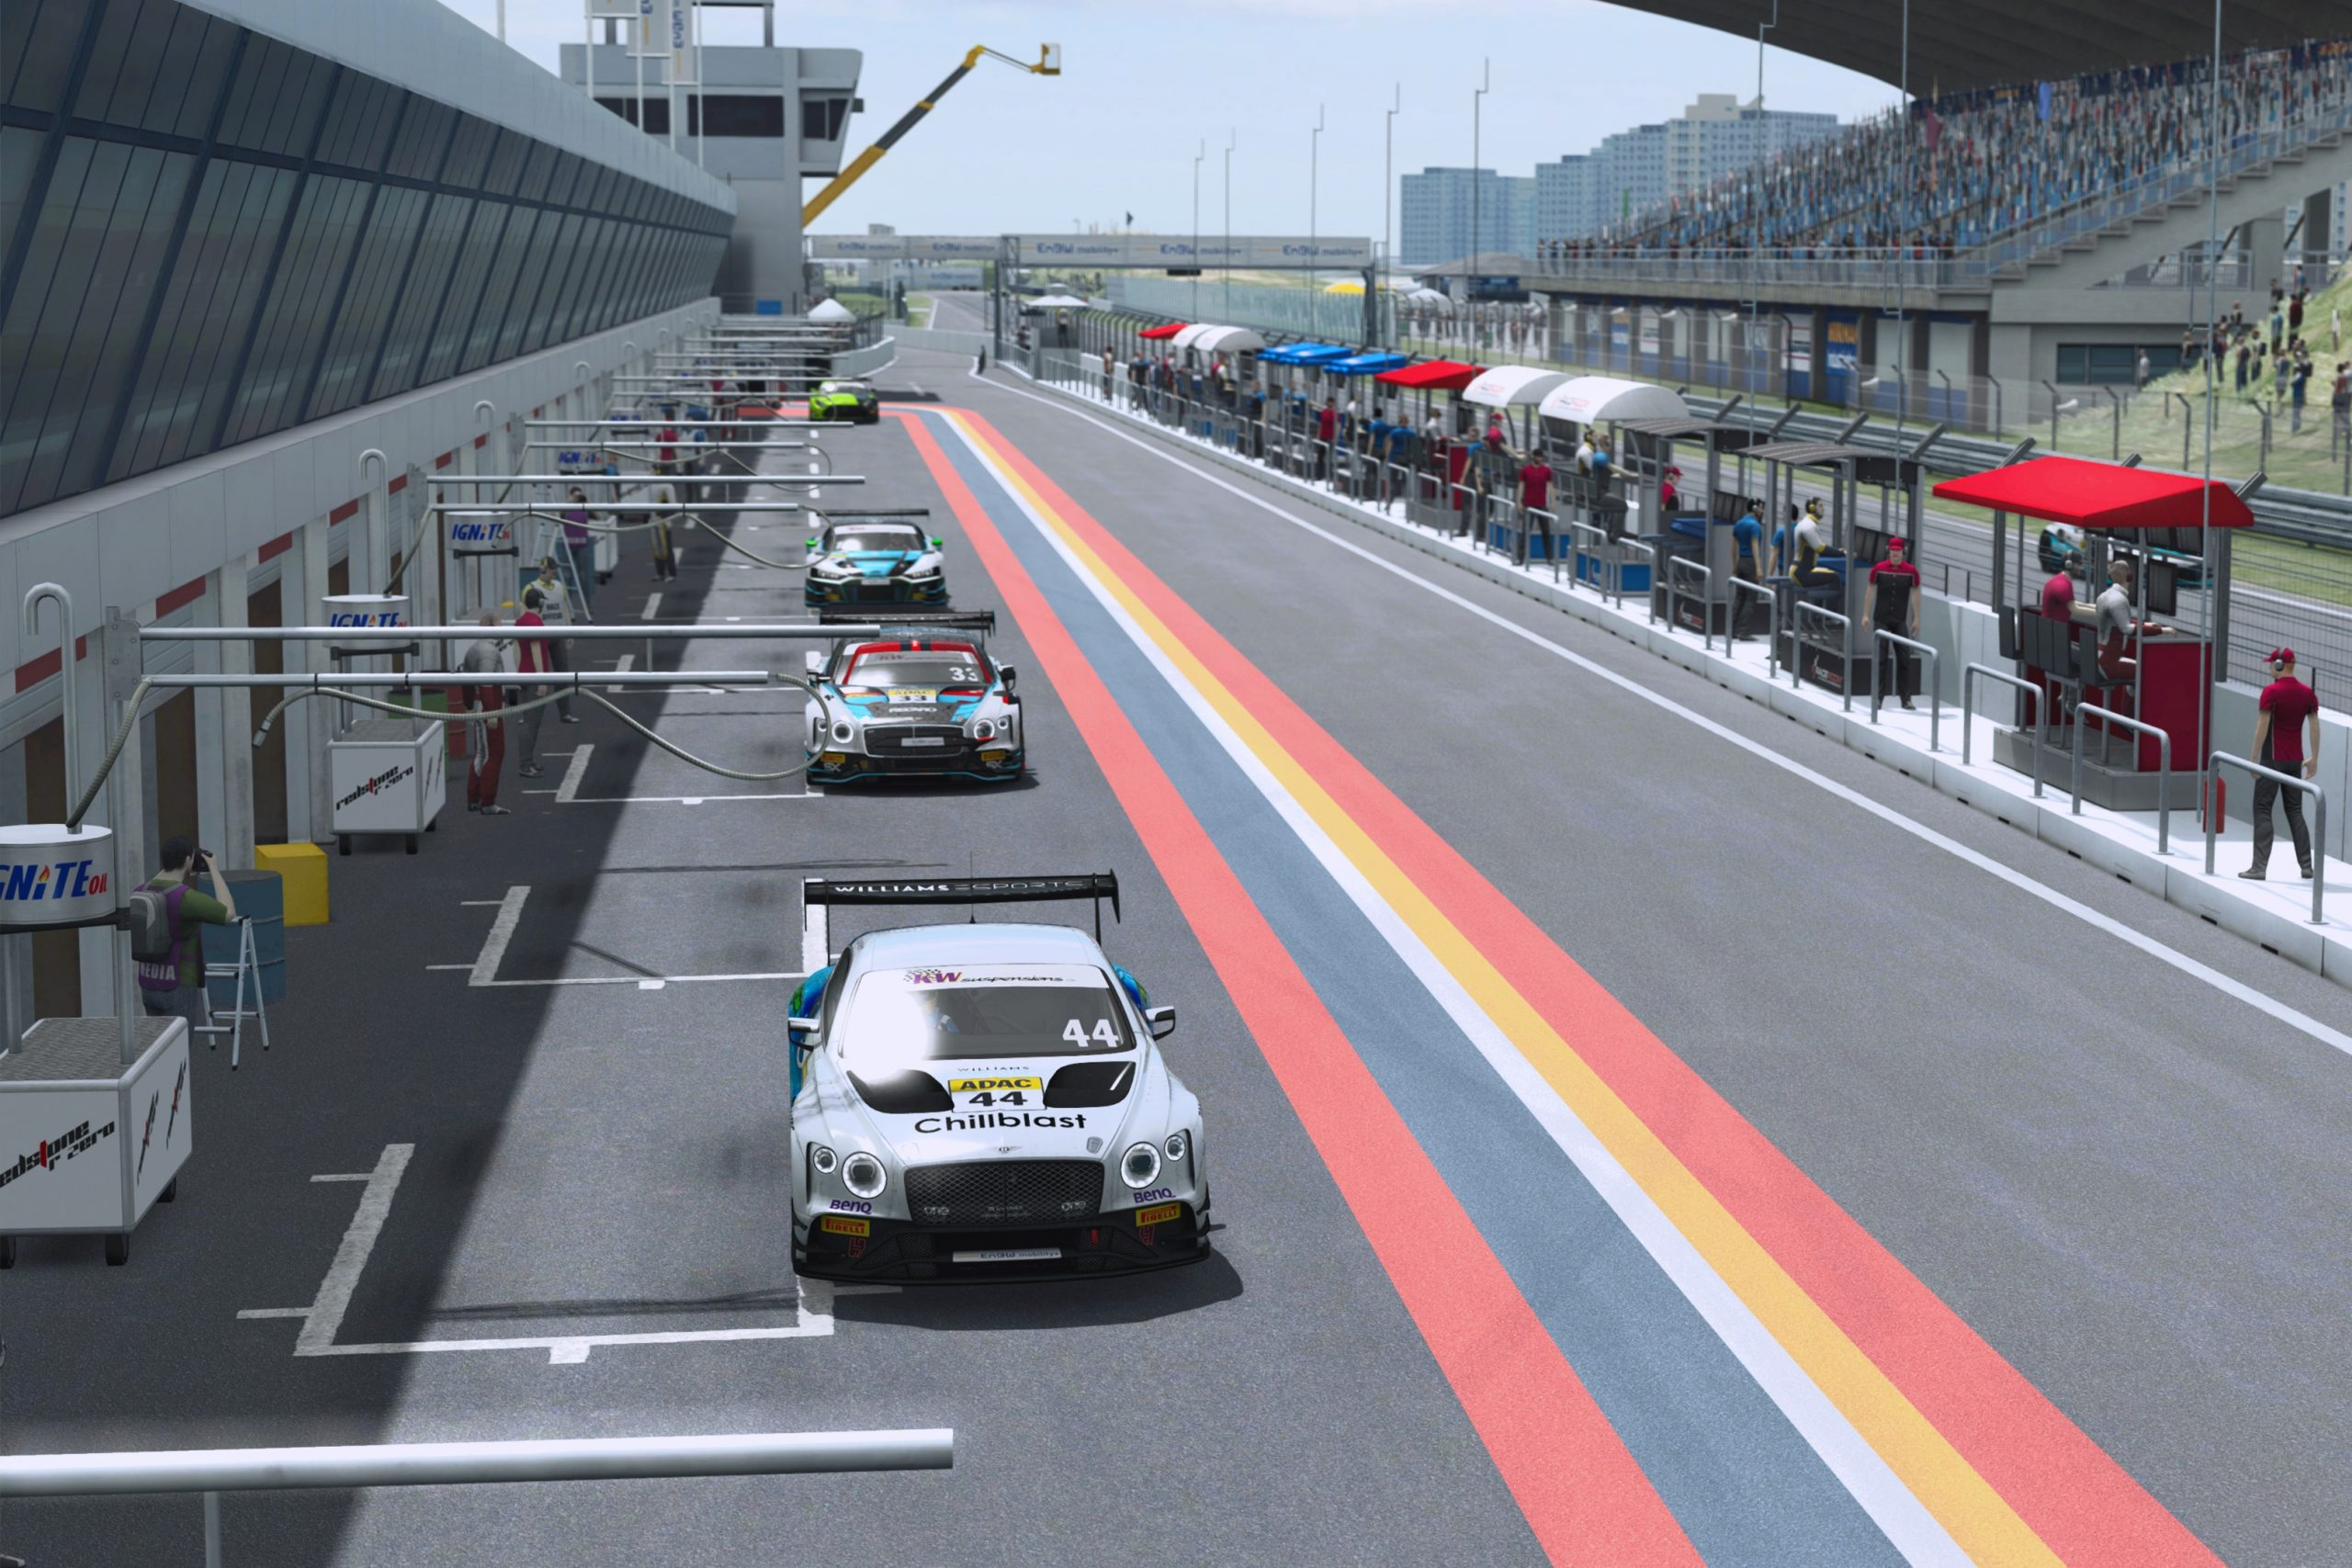 Keithley and Löhner first 2021 ADAC GT Masters Esports double winners - Motor Informed